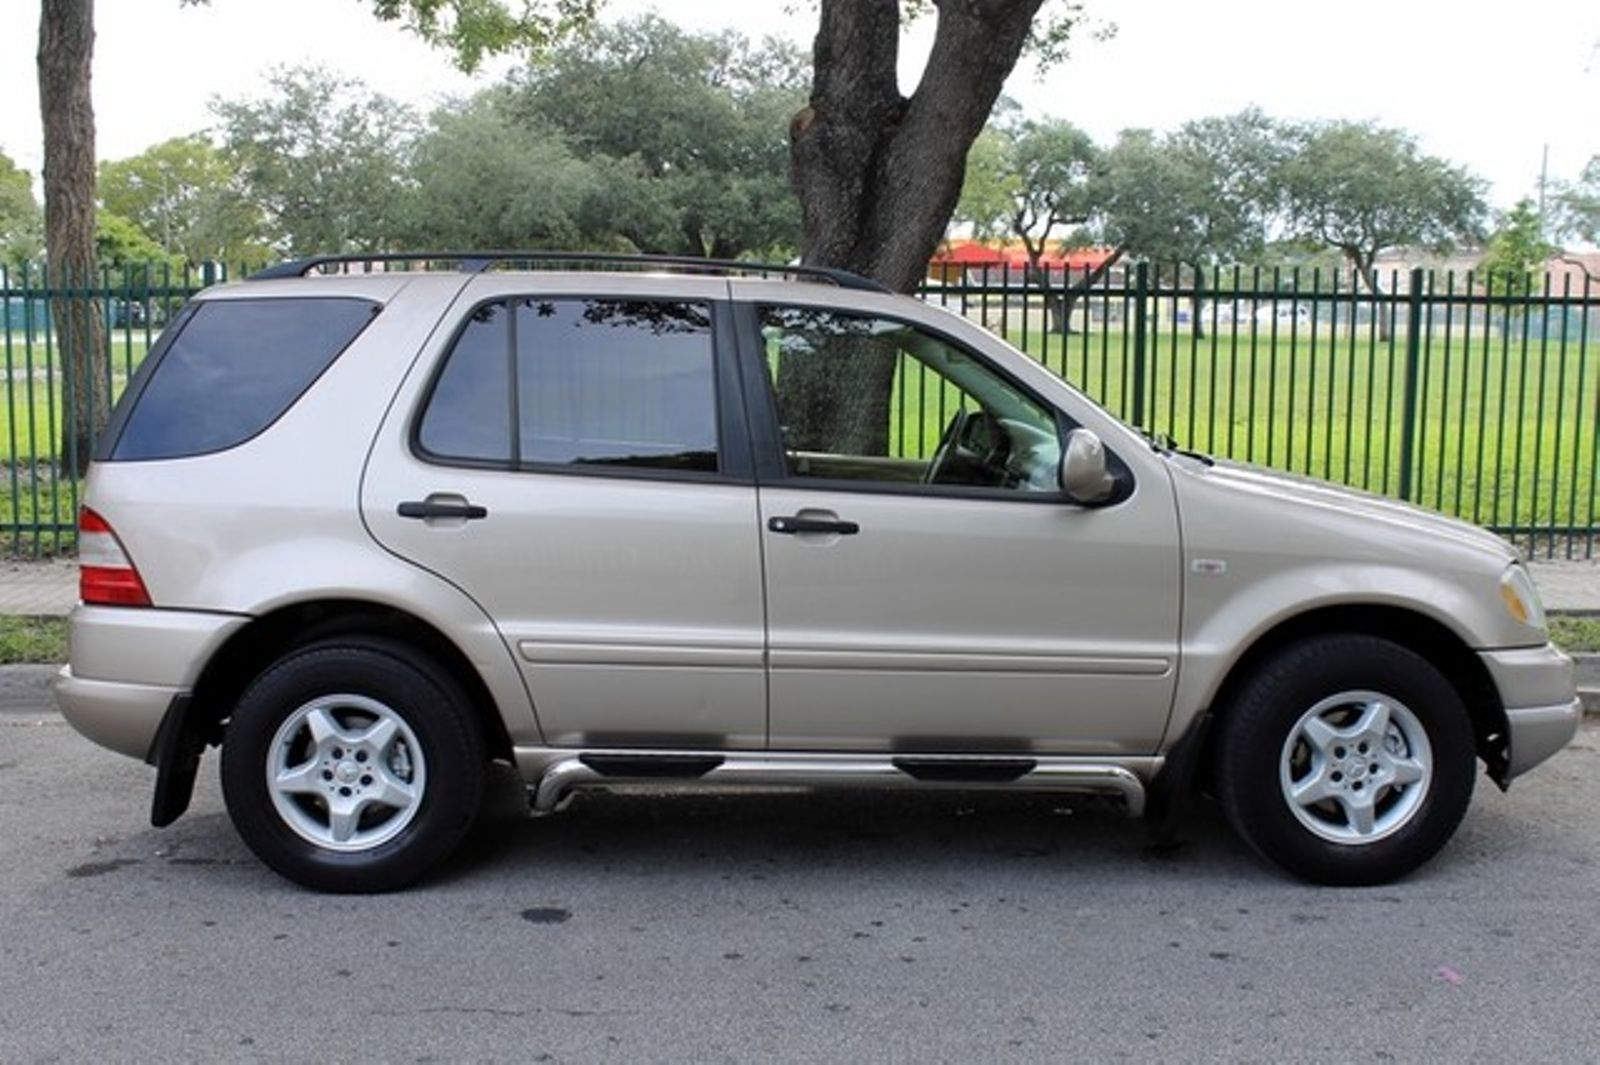 Mercedes Benz mercedes benz ml320 : 2001 Mercedes-Benz ML320 city Florida The Motor Group